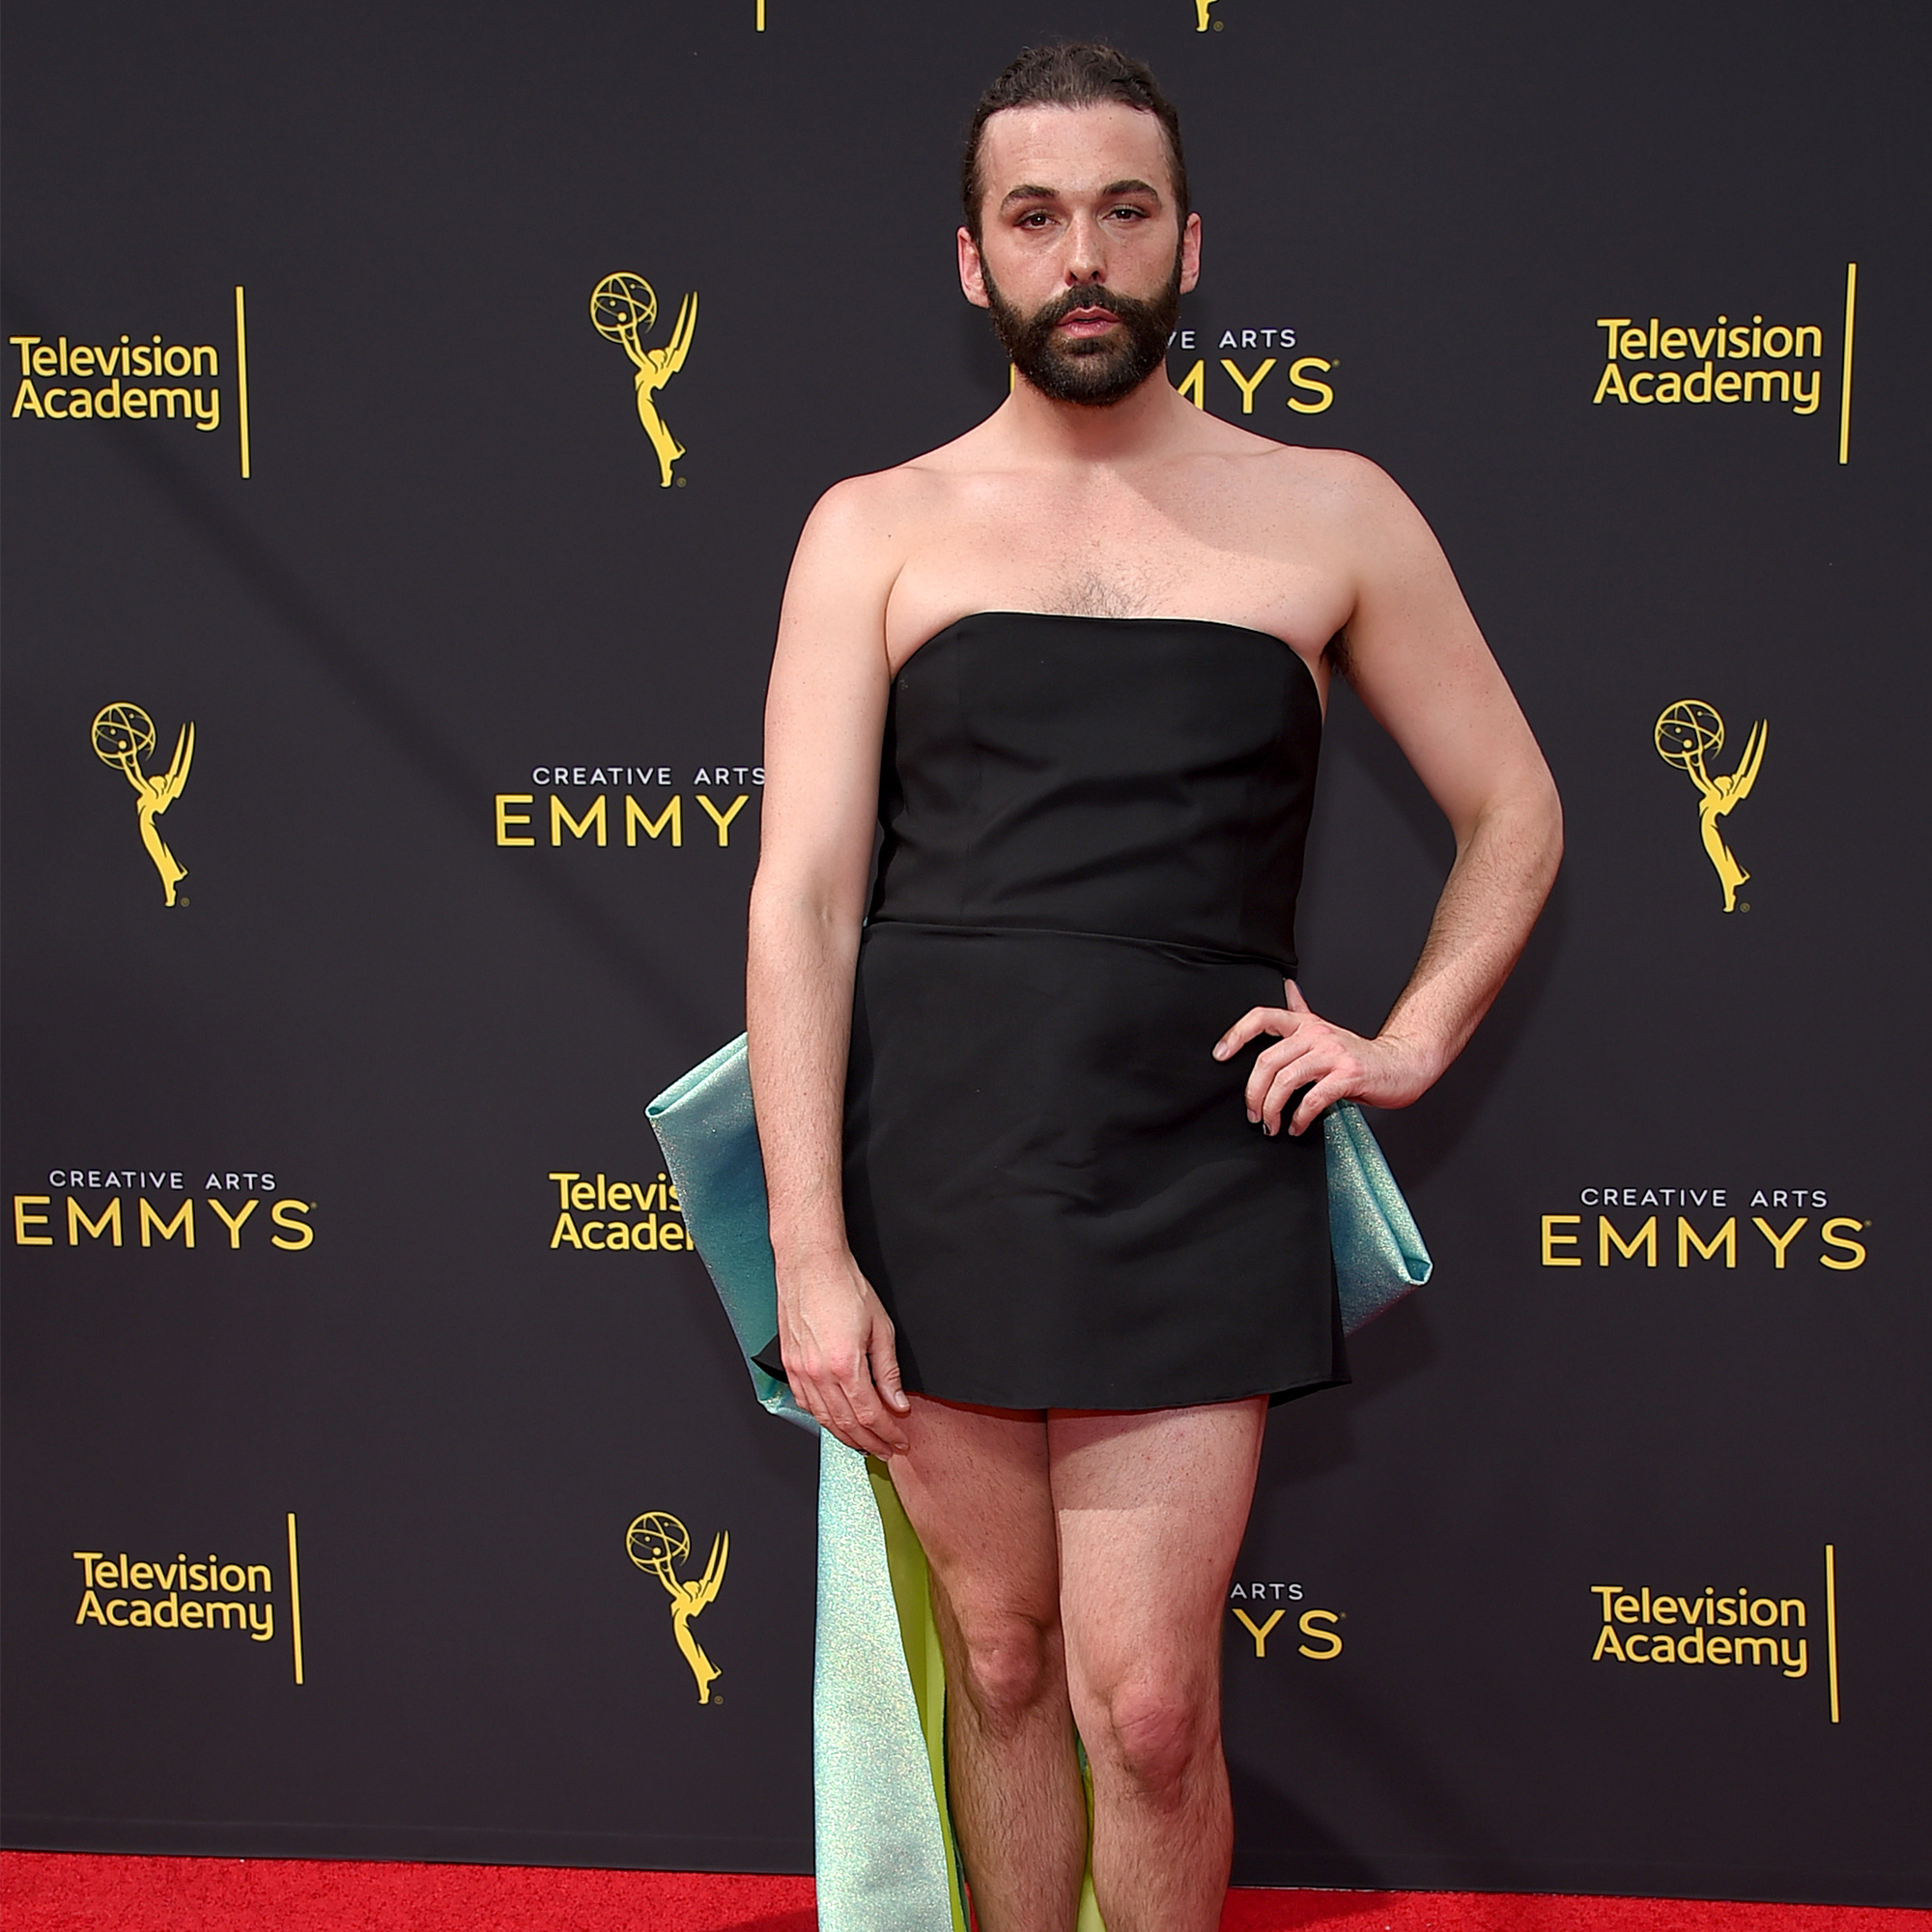 'Queer Eye' Star Jonathan Van Ness Reveals HIV-Positive Status: 'I Do Feel the Need to Talk About This'